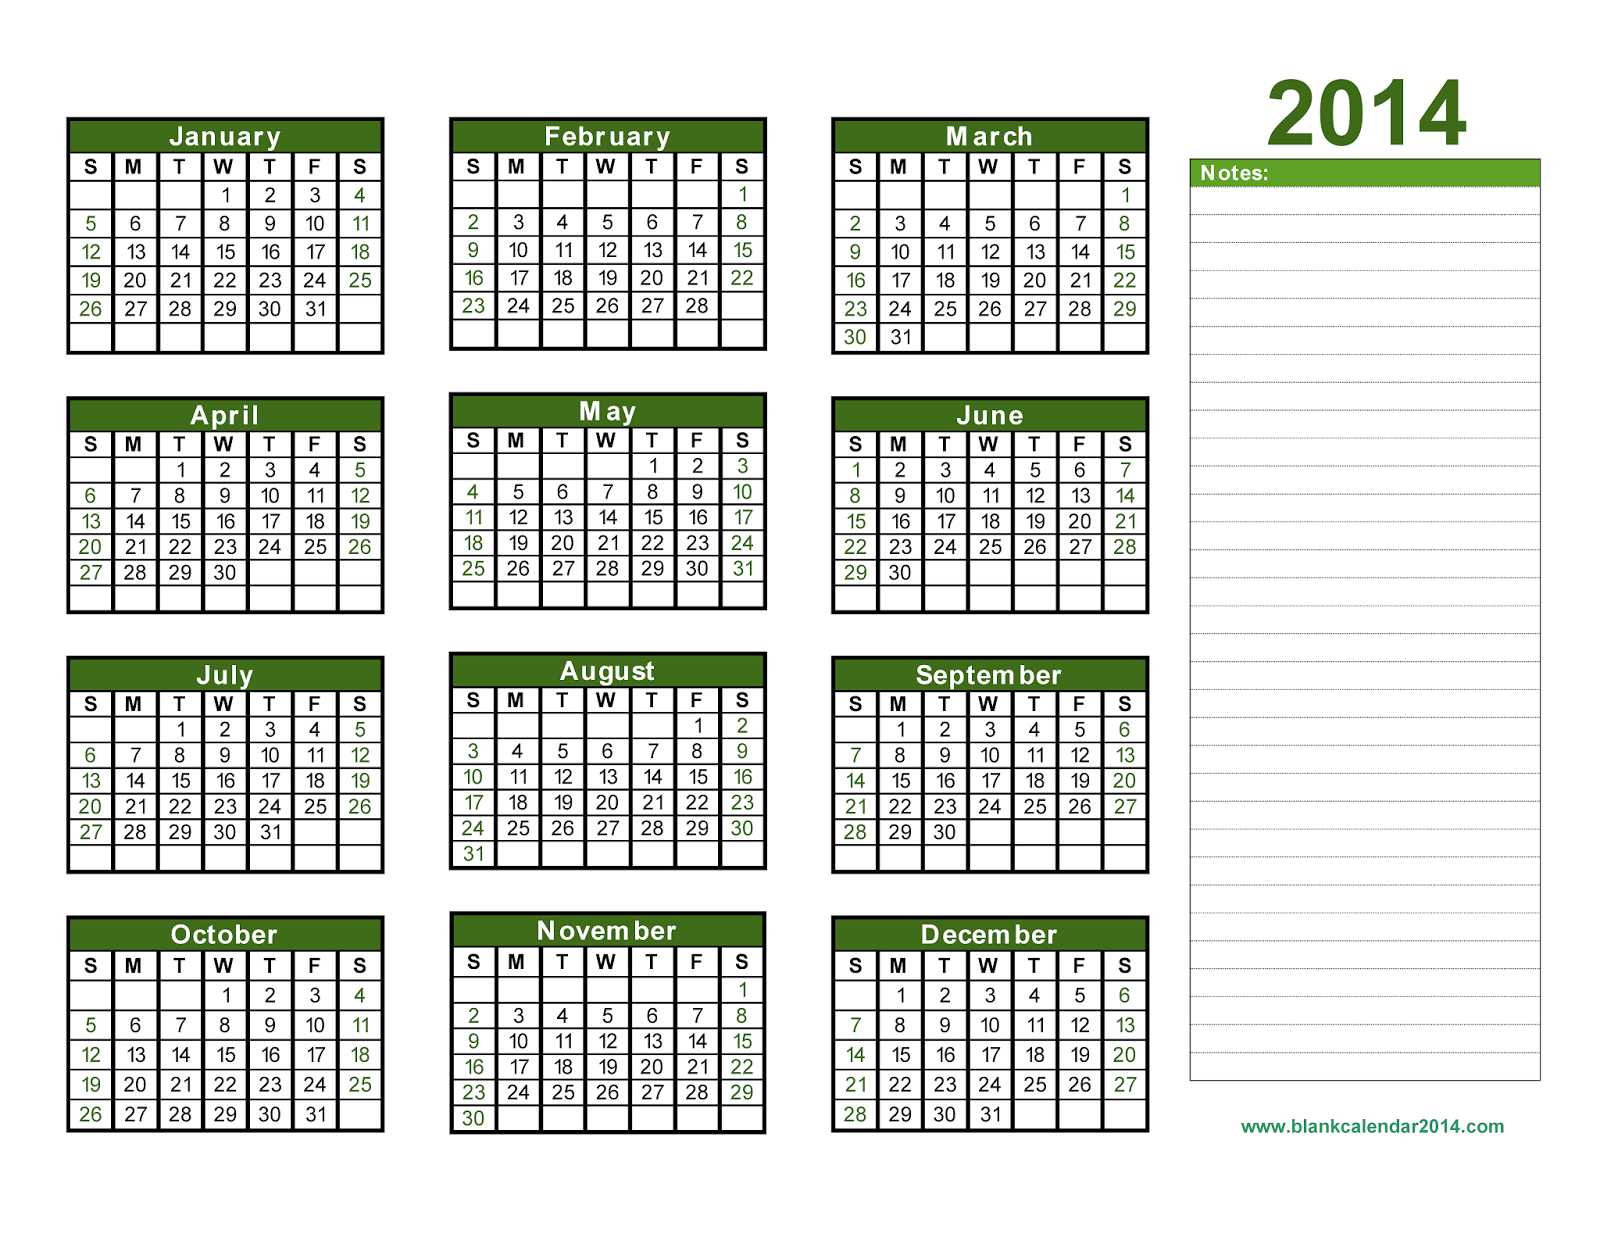 4 month calendar template 2014 - yearly calendar 2014 printable calendar 2014 blank